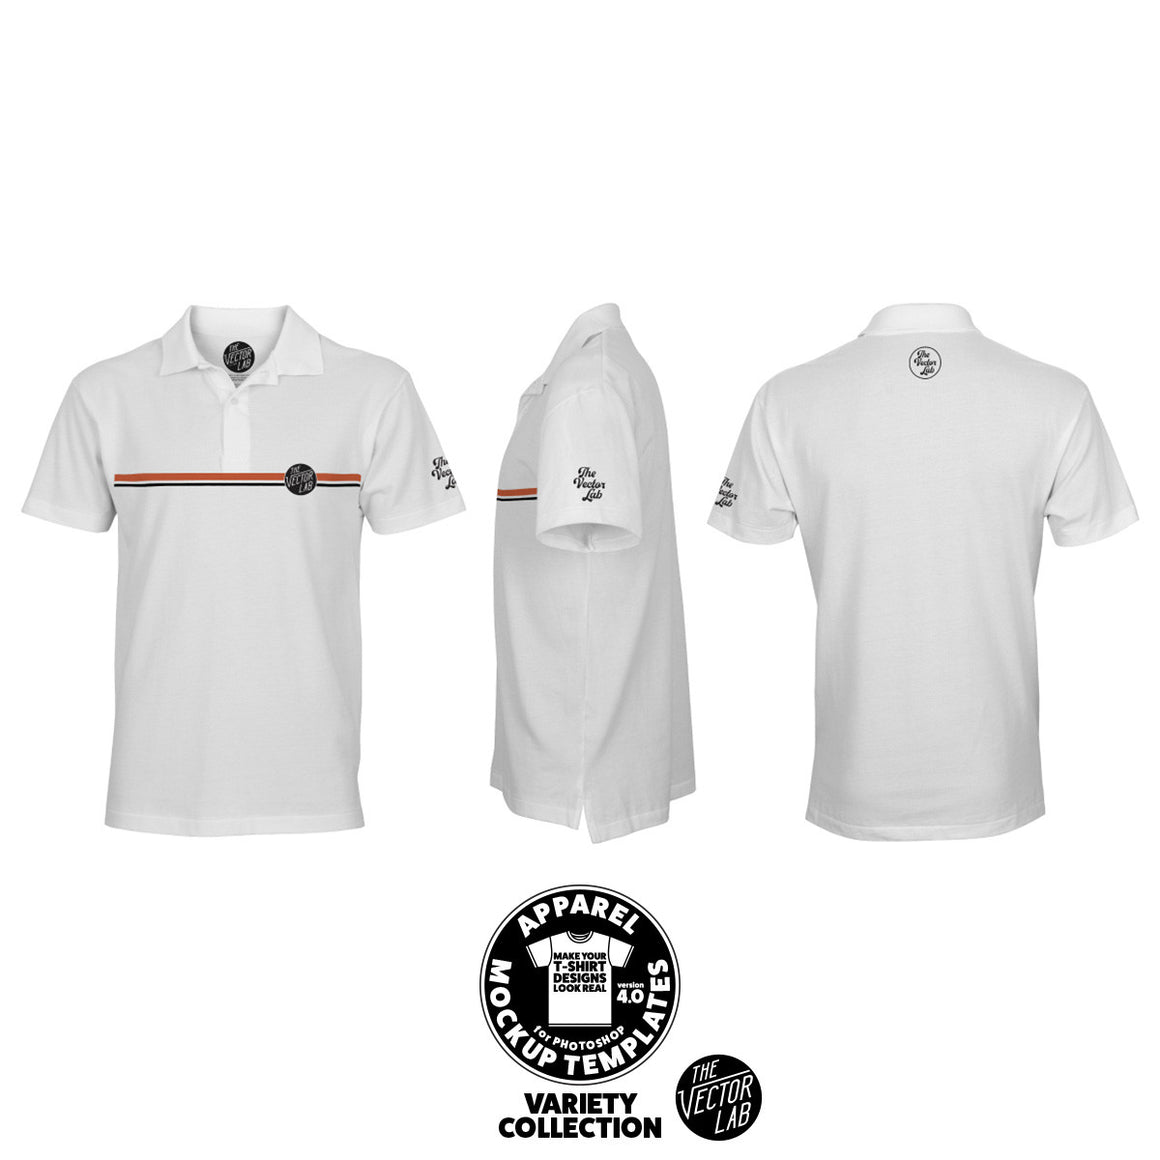 Men's Polo Shirt Mockup Templates for Photoshop